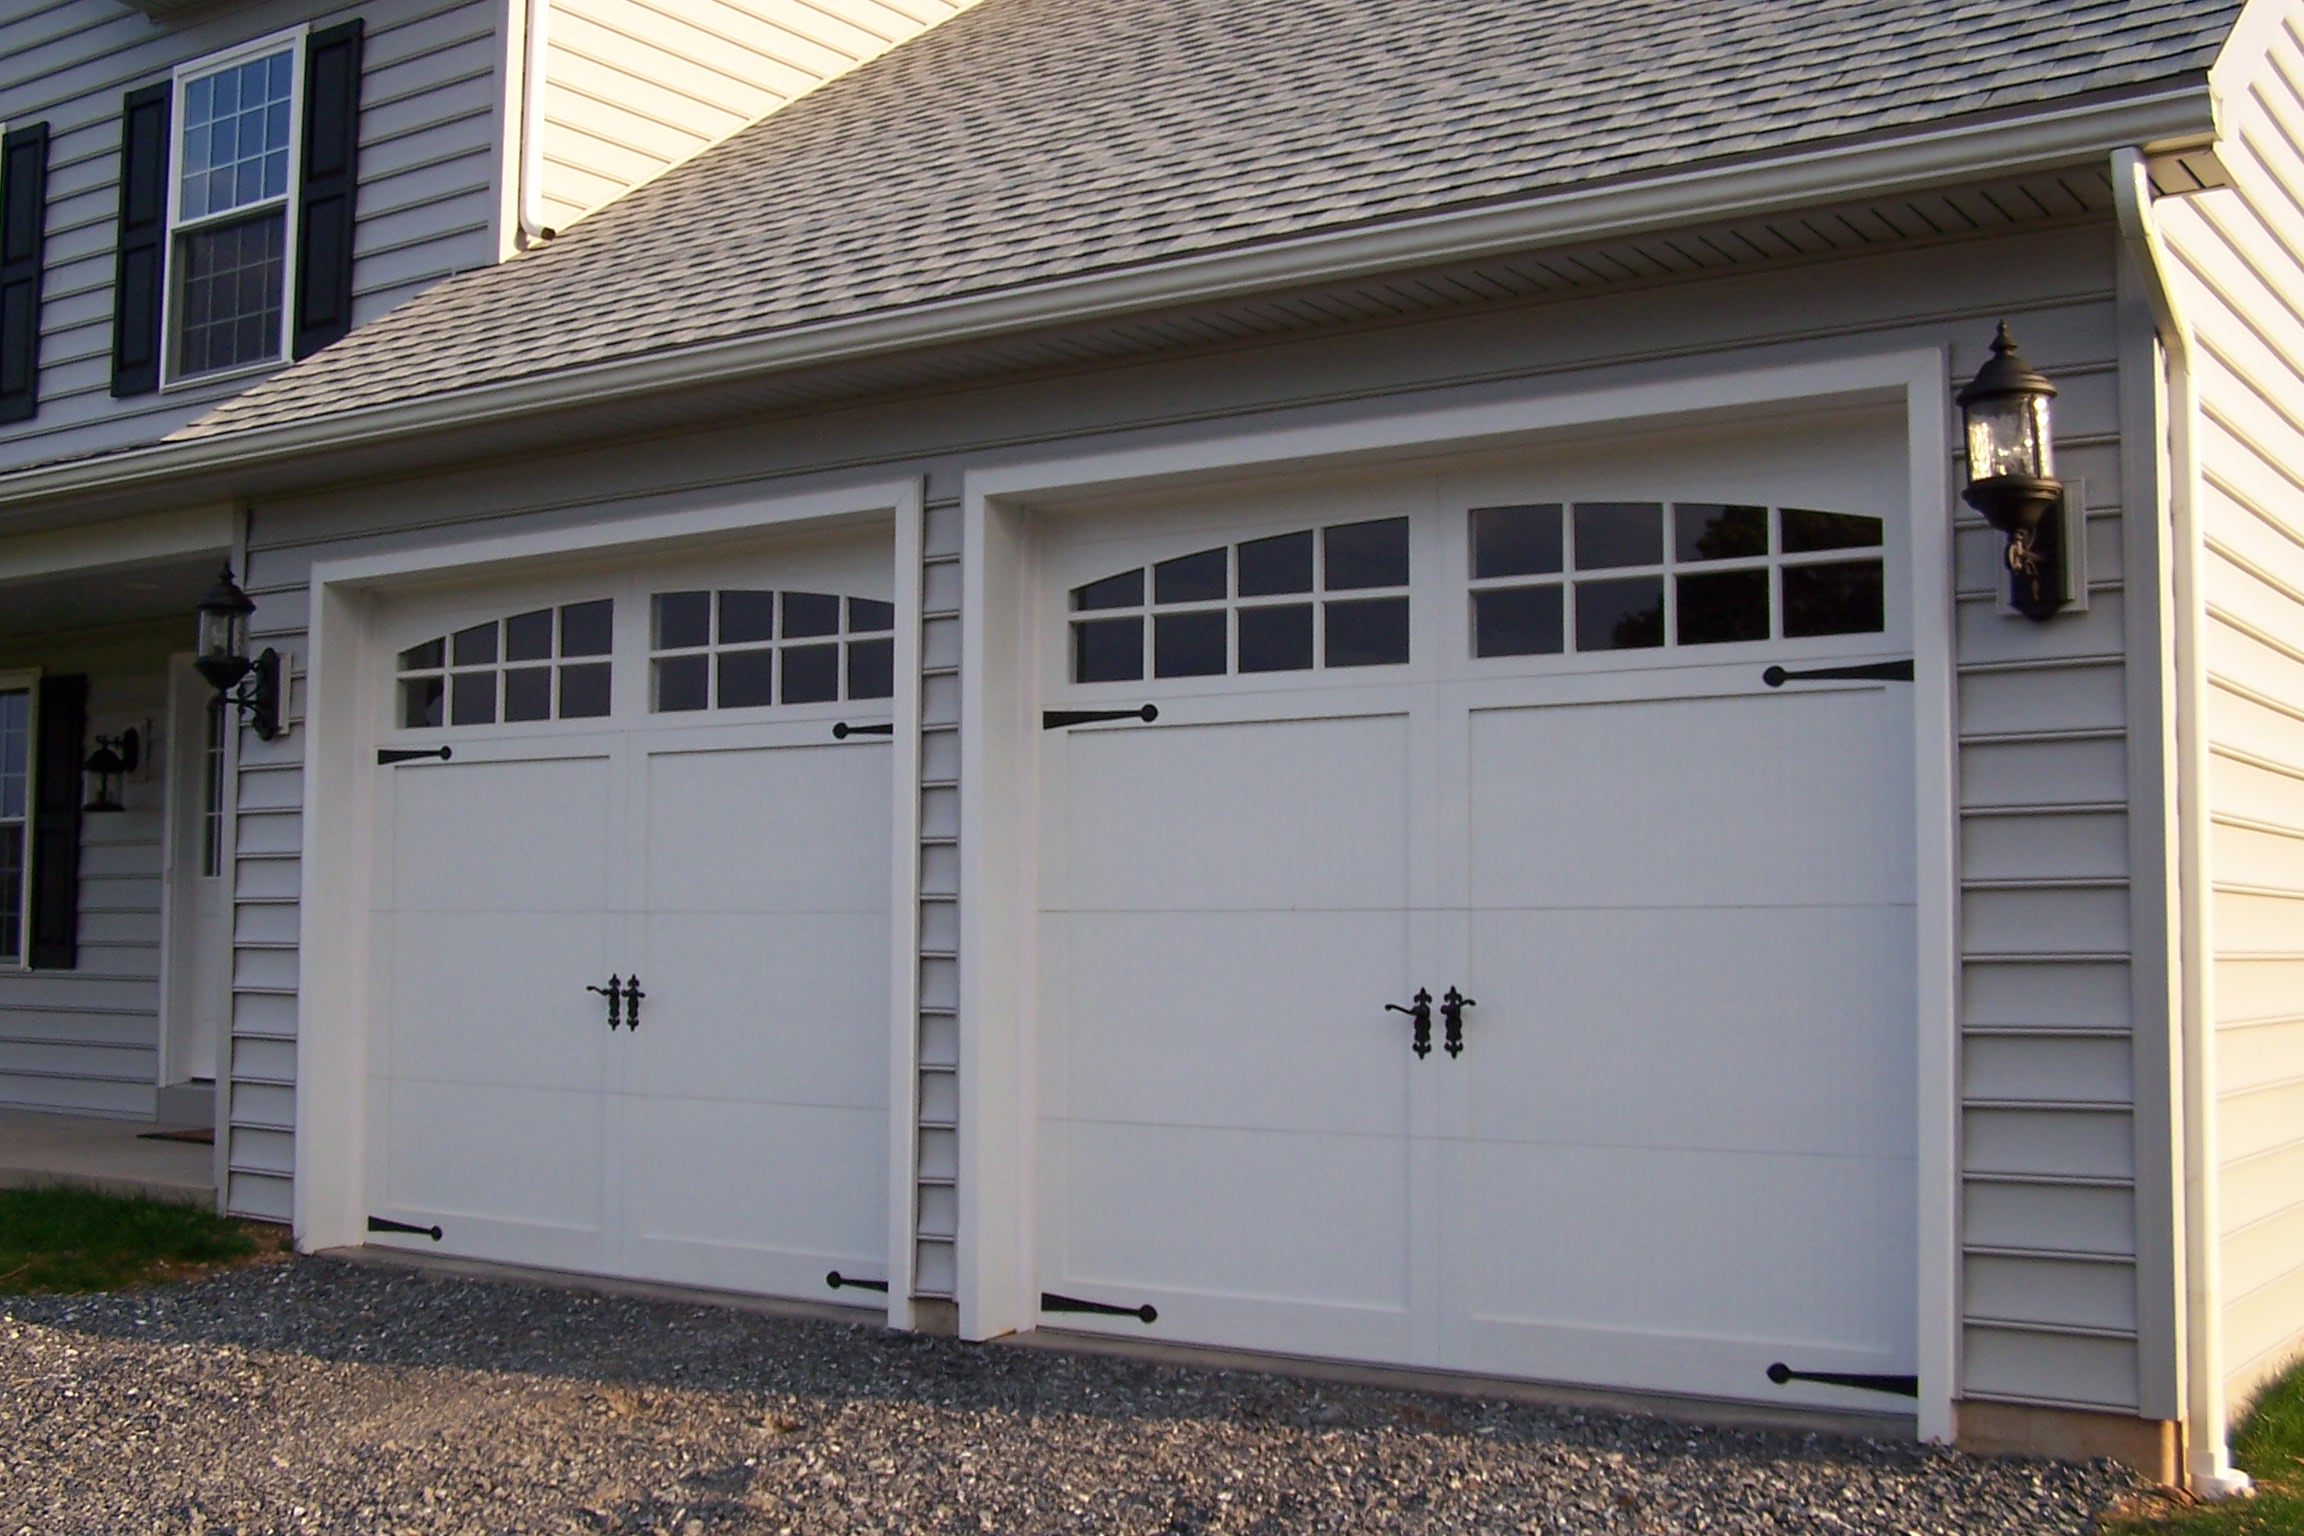 Carriage double garage door - Sectional Type Steel With Exterior Cladding Overhead Garage Doors In The Style Of Old Carriage House Doors